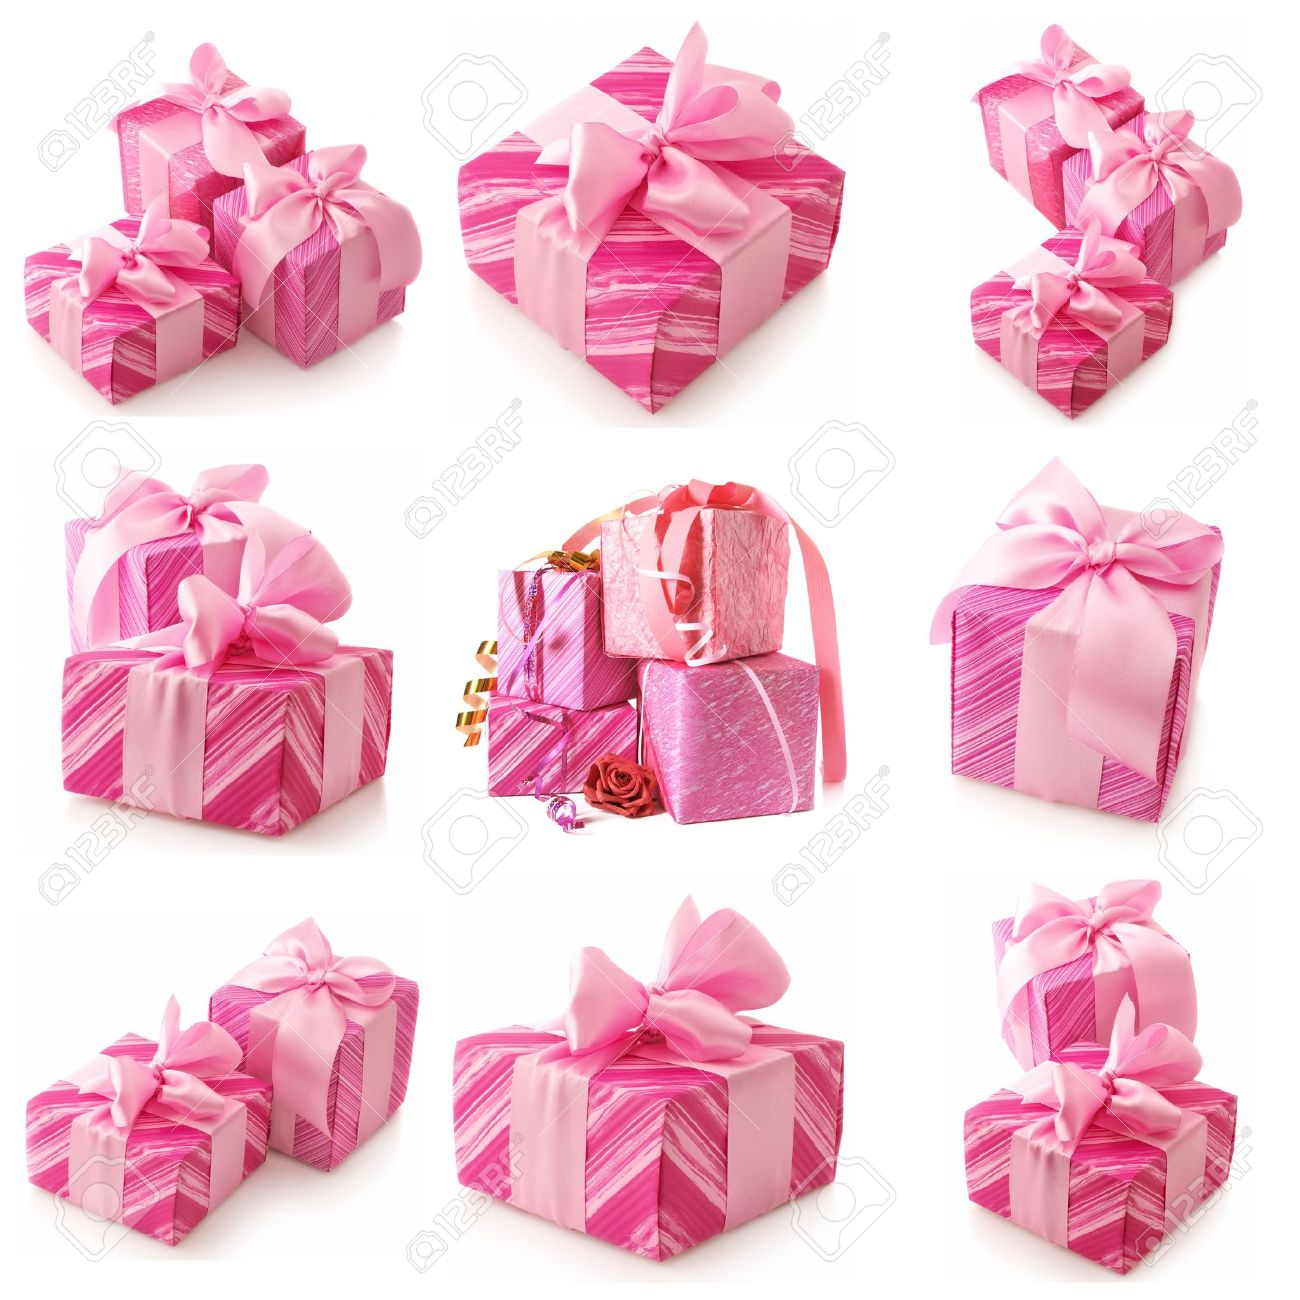 Nine images of pink gifts isolated on white background. Stock Photo - 8138603